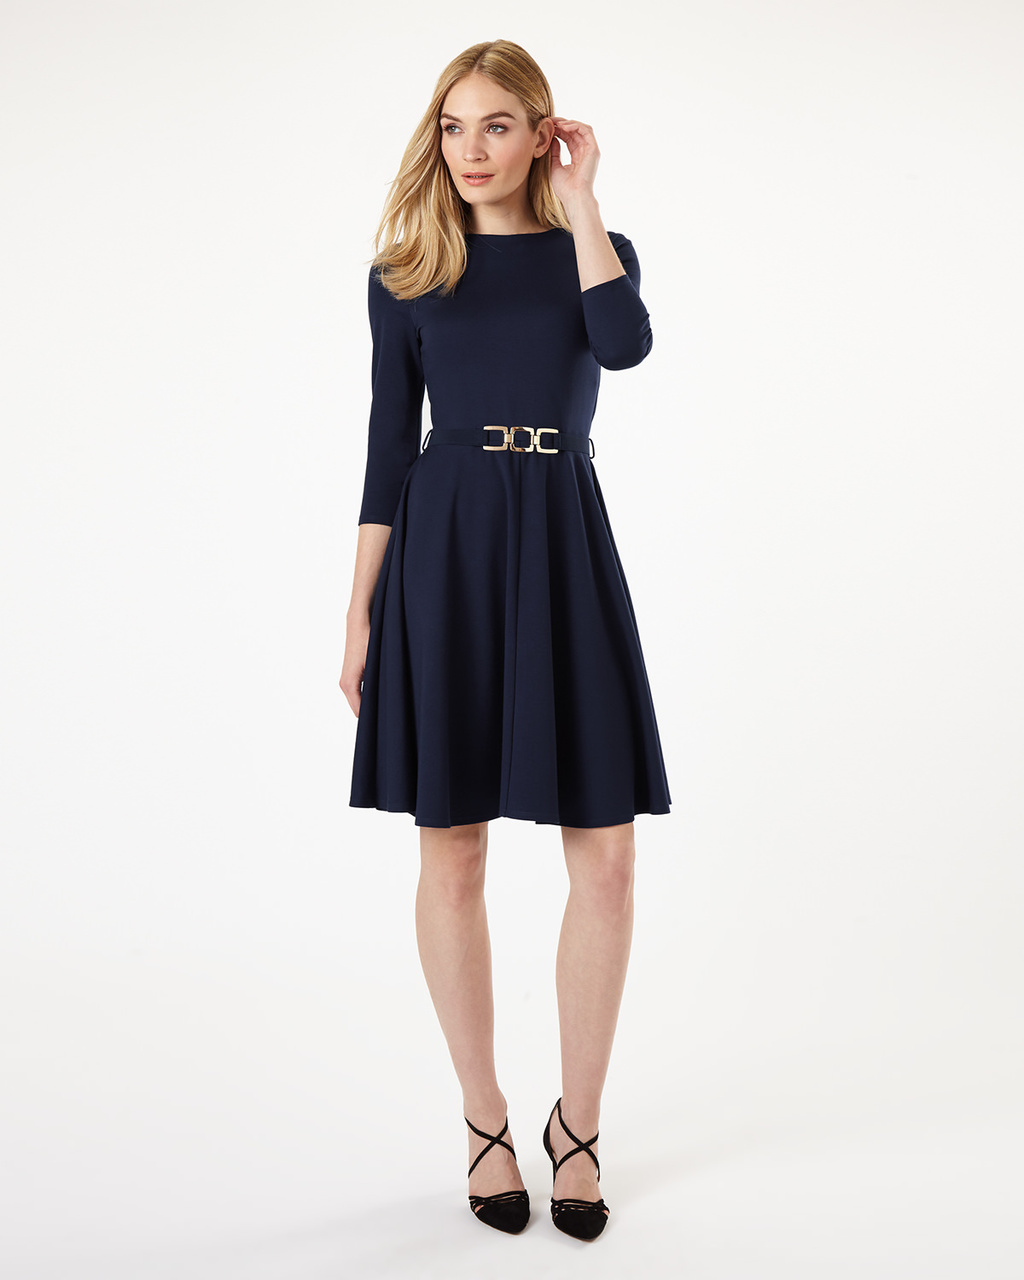 Belted Ponte Swing Dress - pattern: plain; waist detail: belted waist/tie at waist/drawstring; predominant colour: black; occasions: evening; length: just above the knee; fit: fitted at waist & bust; style: fit & flare; fibres: viscose/rayon - stretch; neckline: crew; sleeve length: 3/4 length; sleeve style: standard; pattern type: fabric; texture group: jersey - stretchy/drapey; season: s/s 2016; wardrobe: event